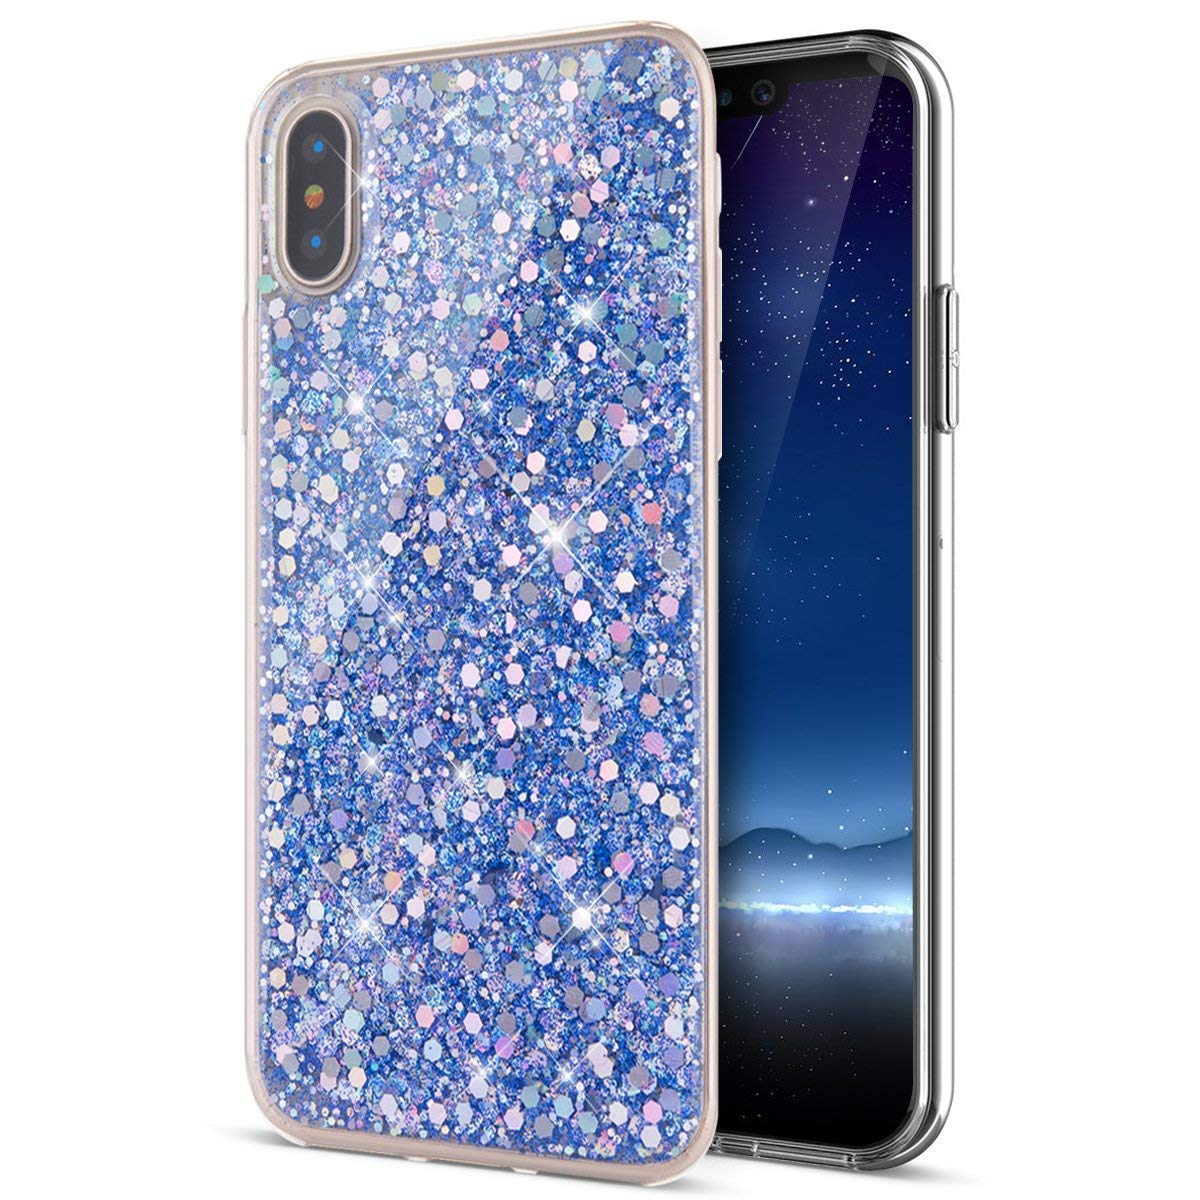 Felfy Kompatibel mit iPhone XR H/ülle Transparent Kristall Bling Glitter Luxus Pailletten Mode Cute S/ü/ße Schutzh/ülle Ultra D/ünn Weich Silikon TPU Handy Tasche Kratzfeste Cover Case,Silber